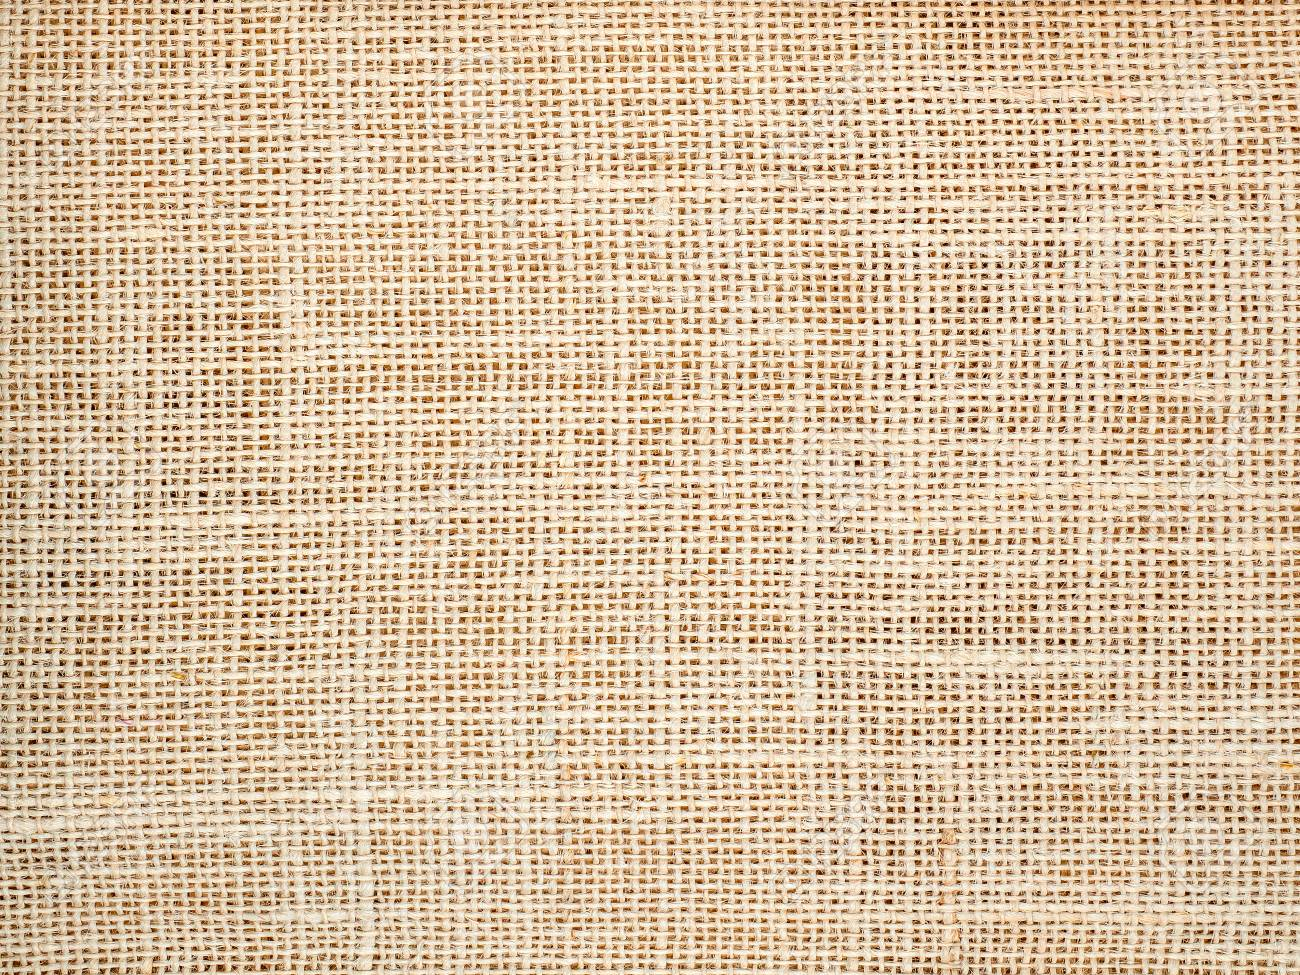 Sack Fabric Wallpaper Texture Pattern Background In White And Stock Photo Picture And Royalty Free Image Image 80471302